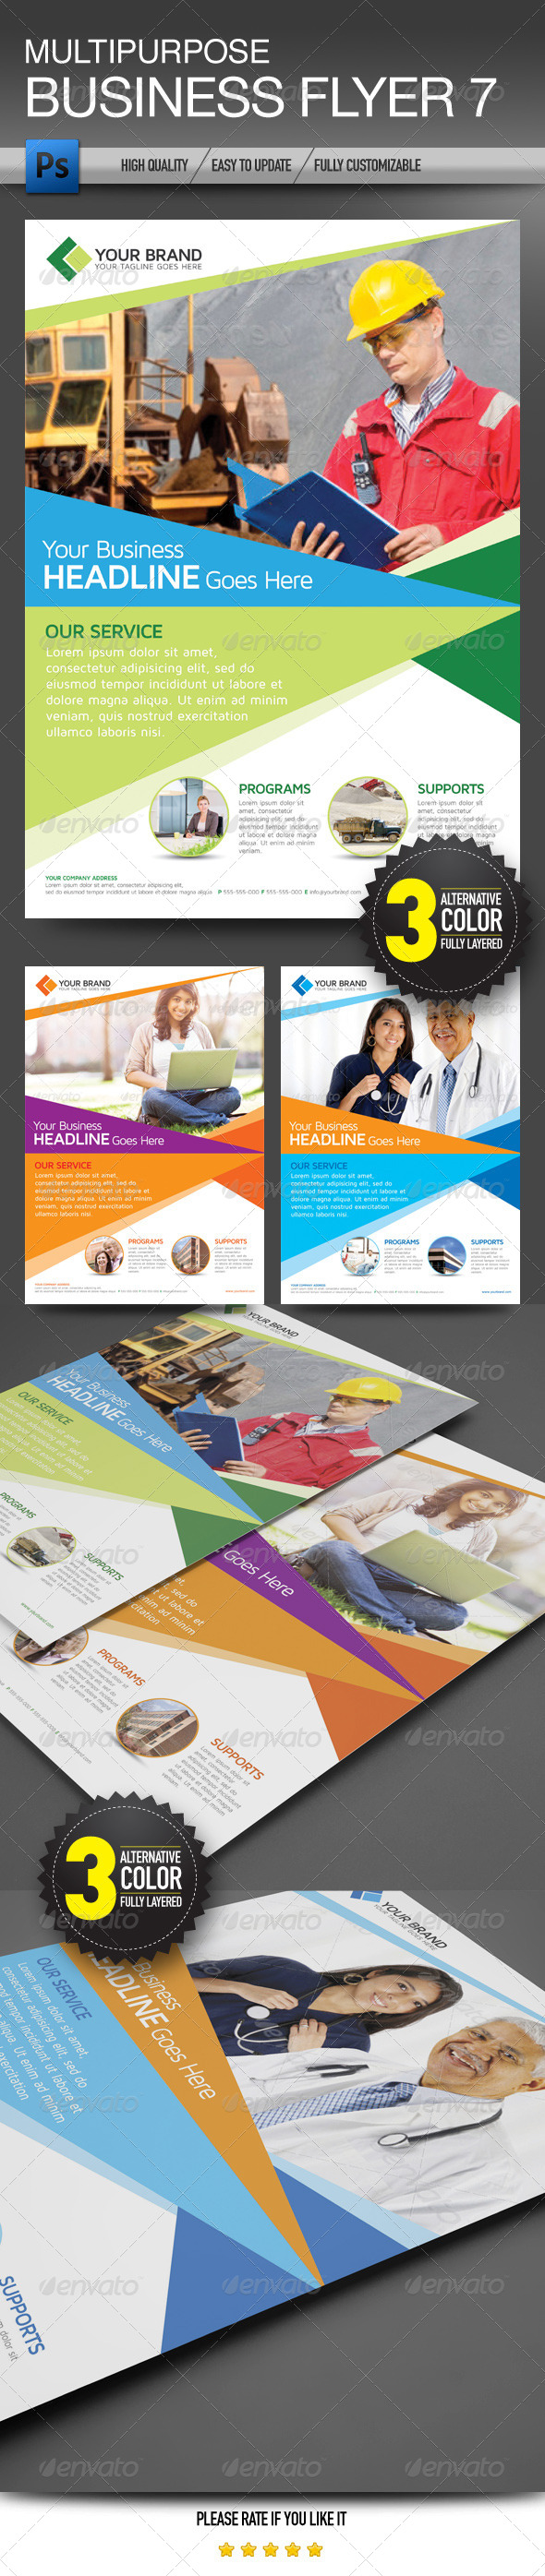 GraphicRiver Multipurpose Business Flyer 7 5854149